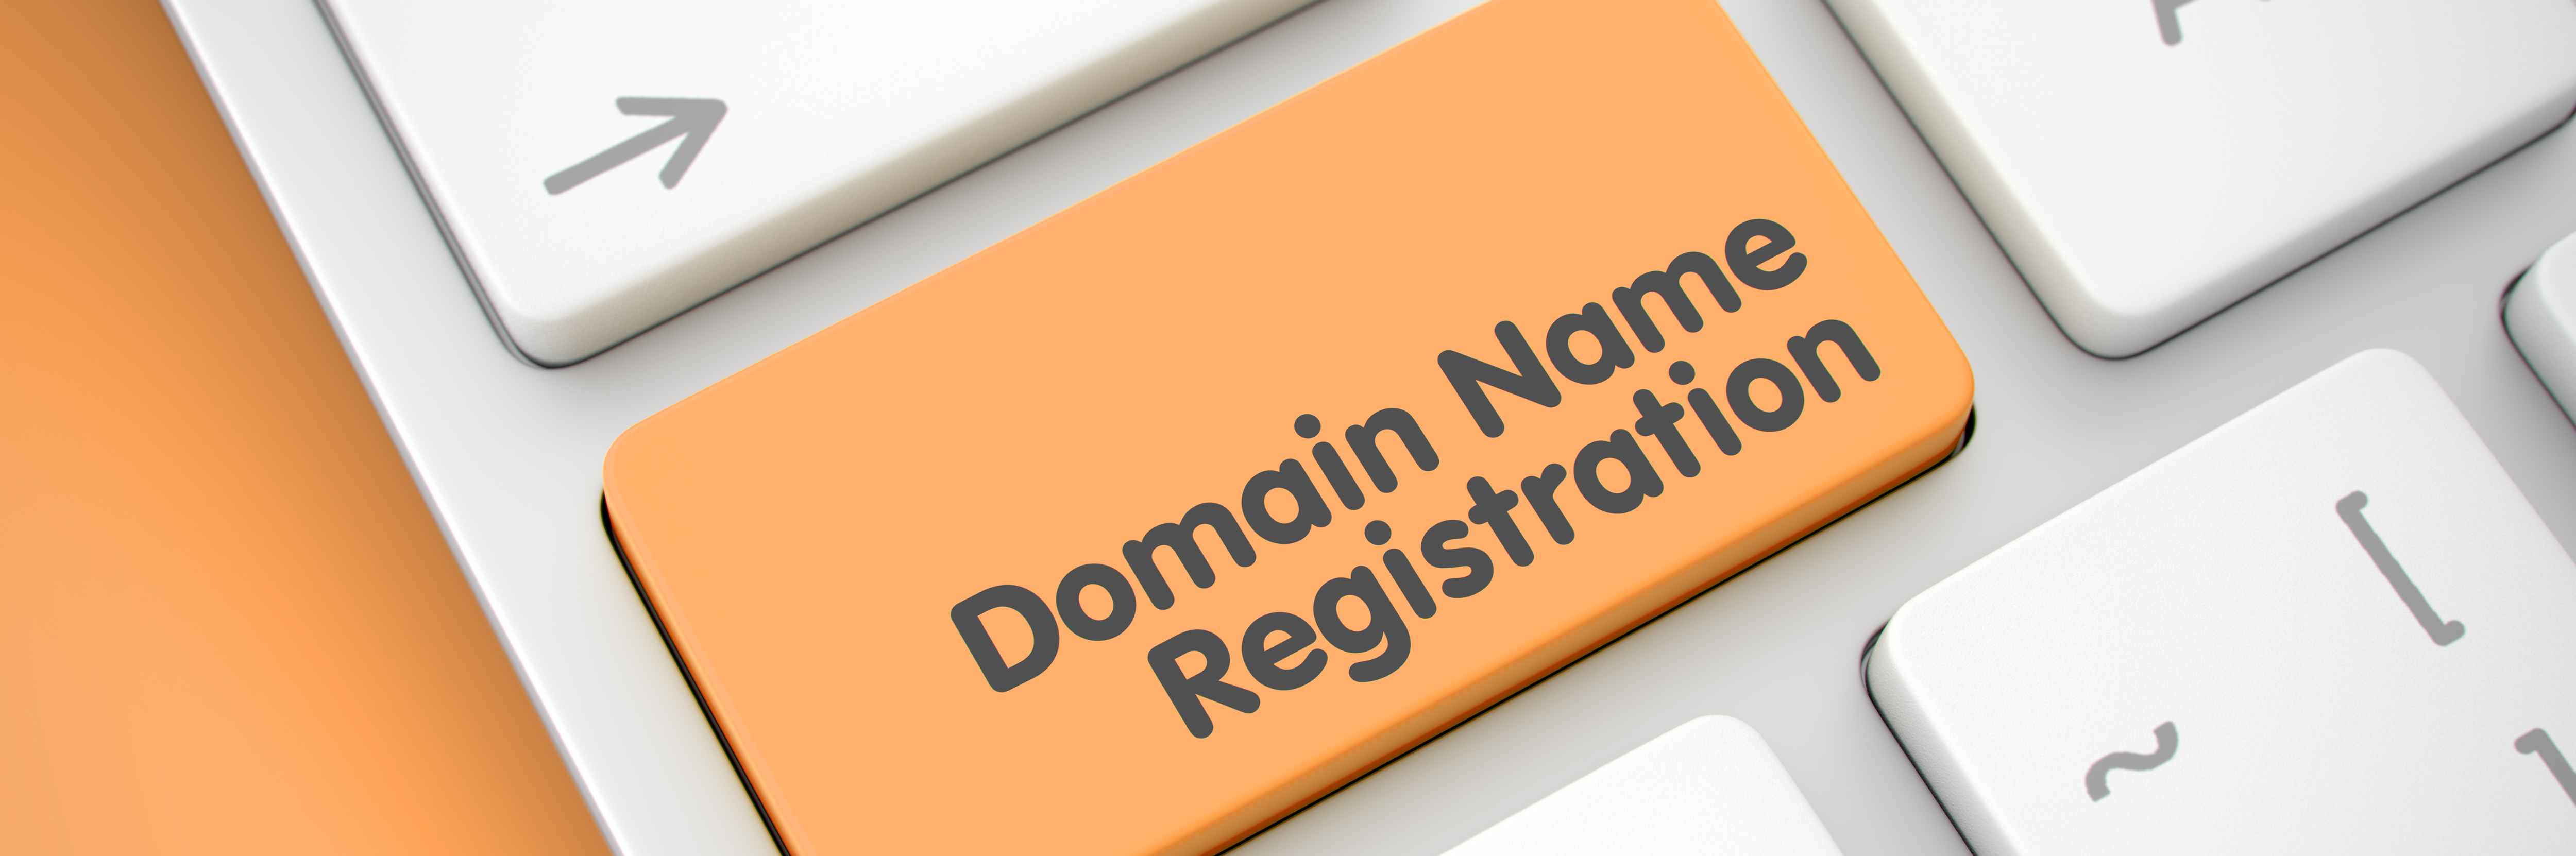 New Australian Domain Name Licensing Rules